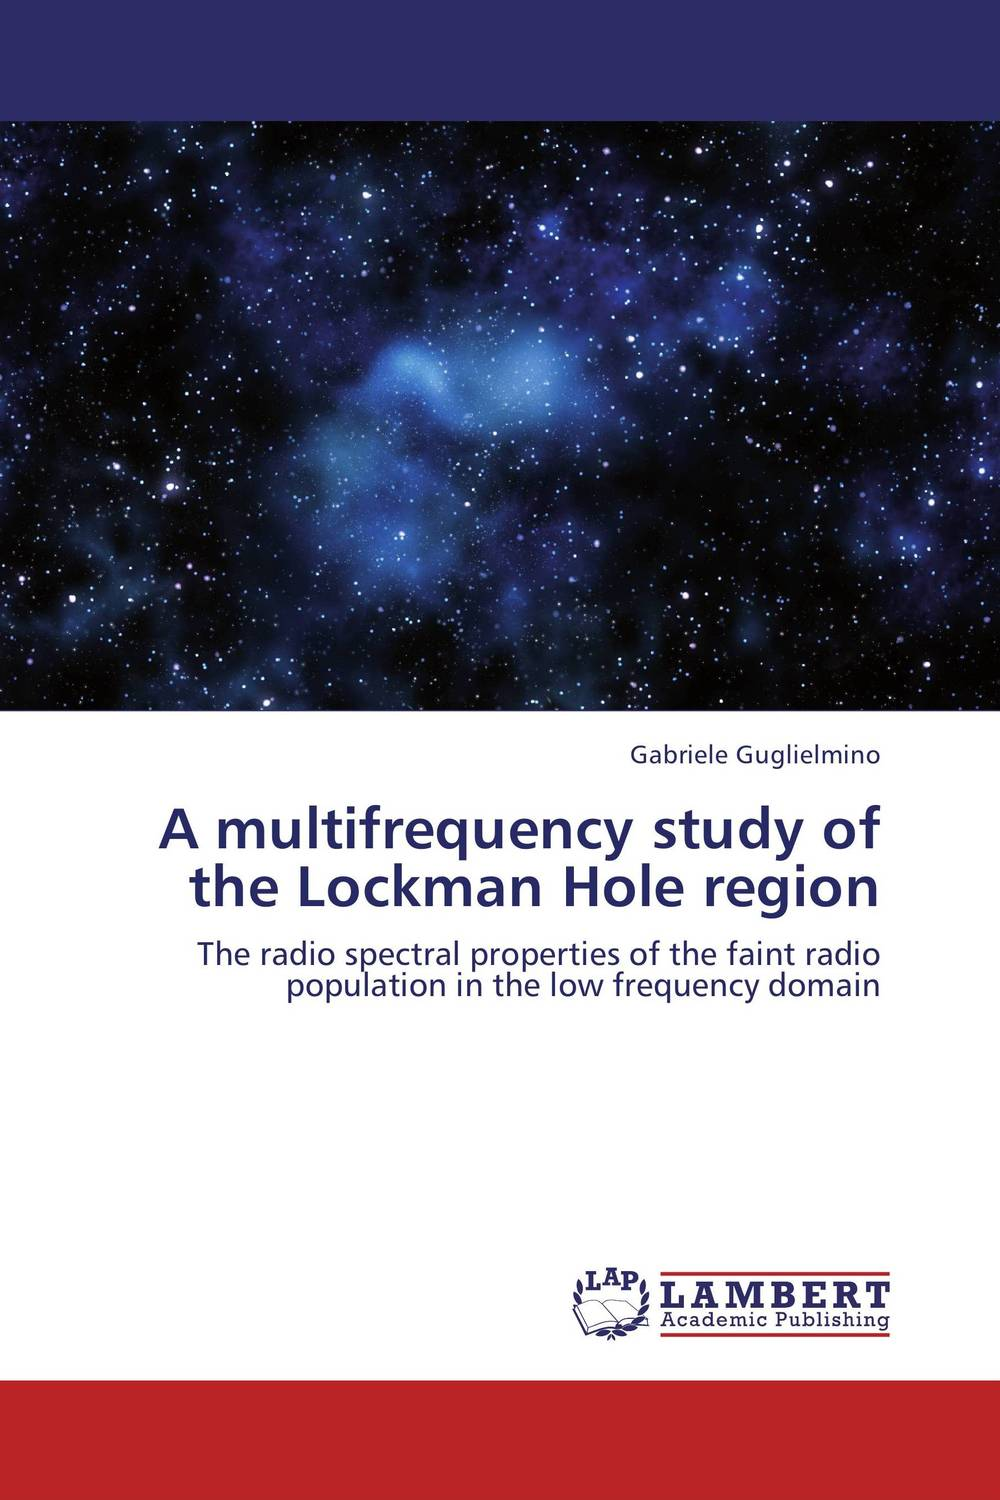 A multifrequency study of the Lockman Hole region the counterlife